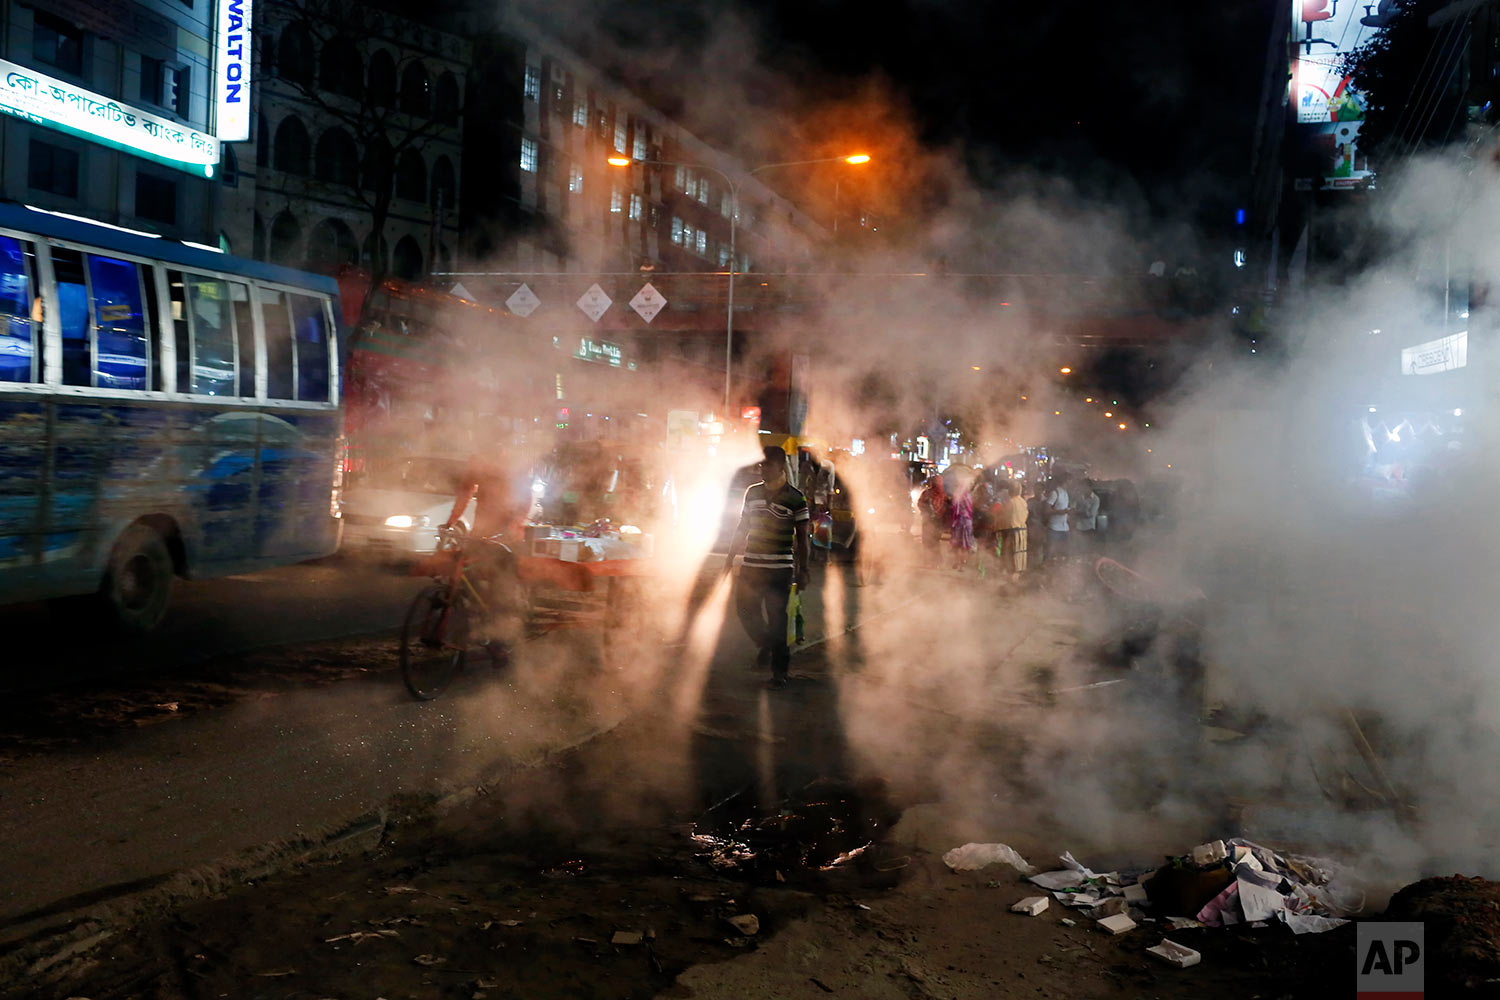 In this Wednesday, April 26, 2017 photo, a Bangladeshi man is silhouetted against the headlight of a car as he walks past smoke rising from a manhole on a hot summer evening in Dhaka, Bangladesh. (AP Photo/ A. M. Ahad)